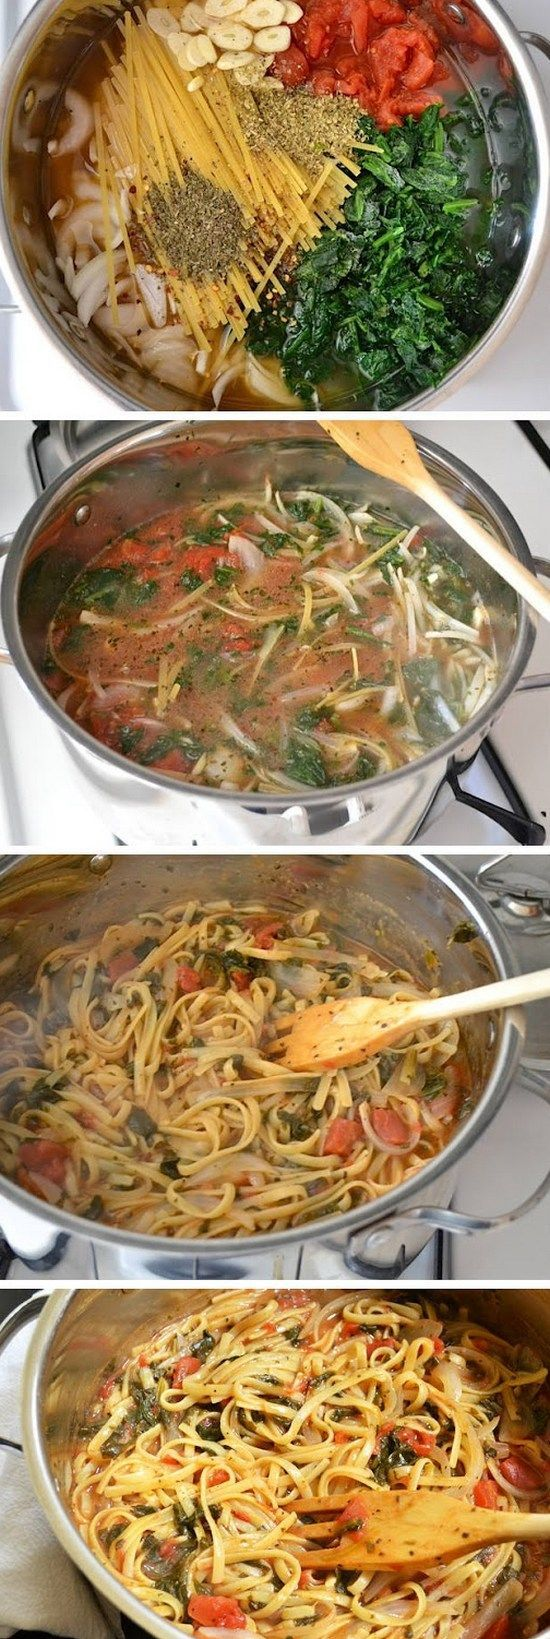 Italian Wonderpot Recipe! The Pasta Cooks in a Mixture of Broth, Herbs, and Aromatics Making it Super Yummy!